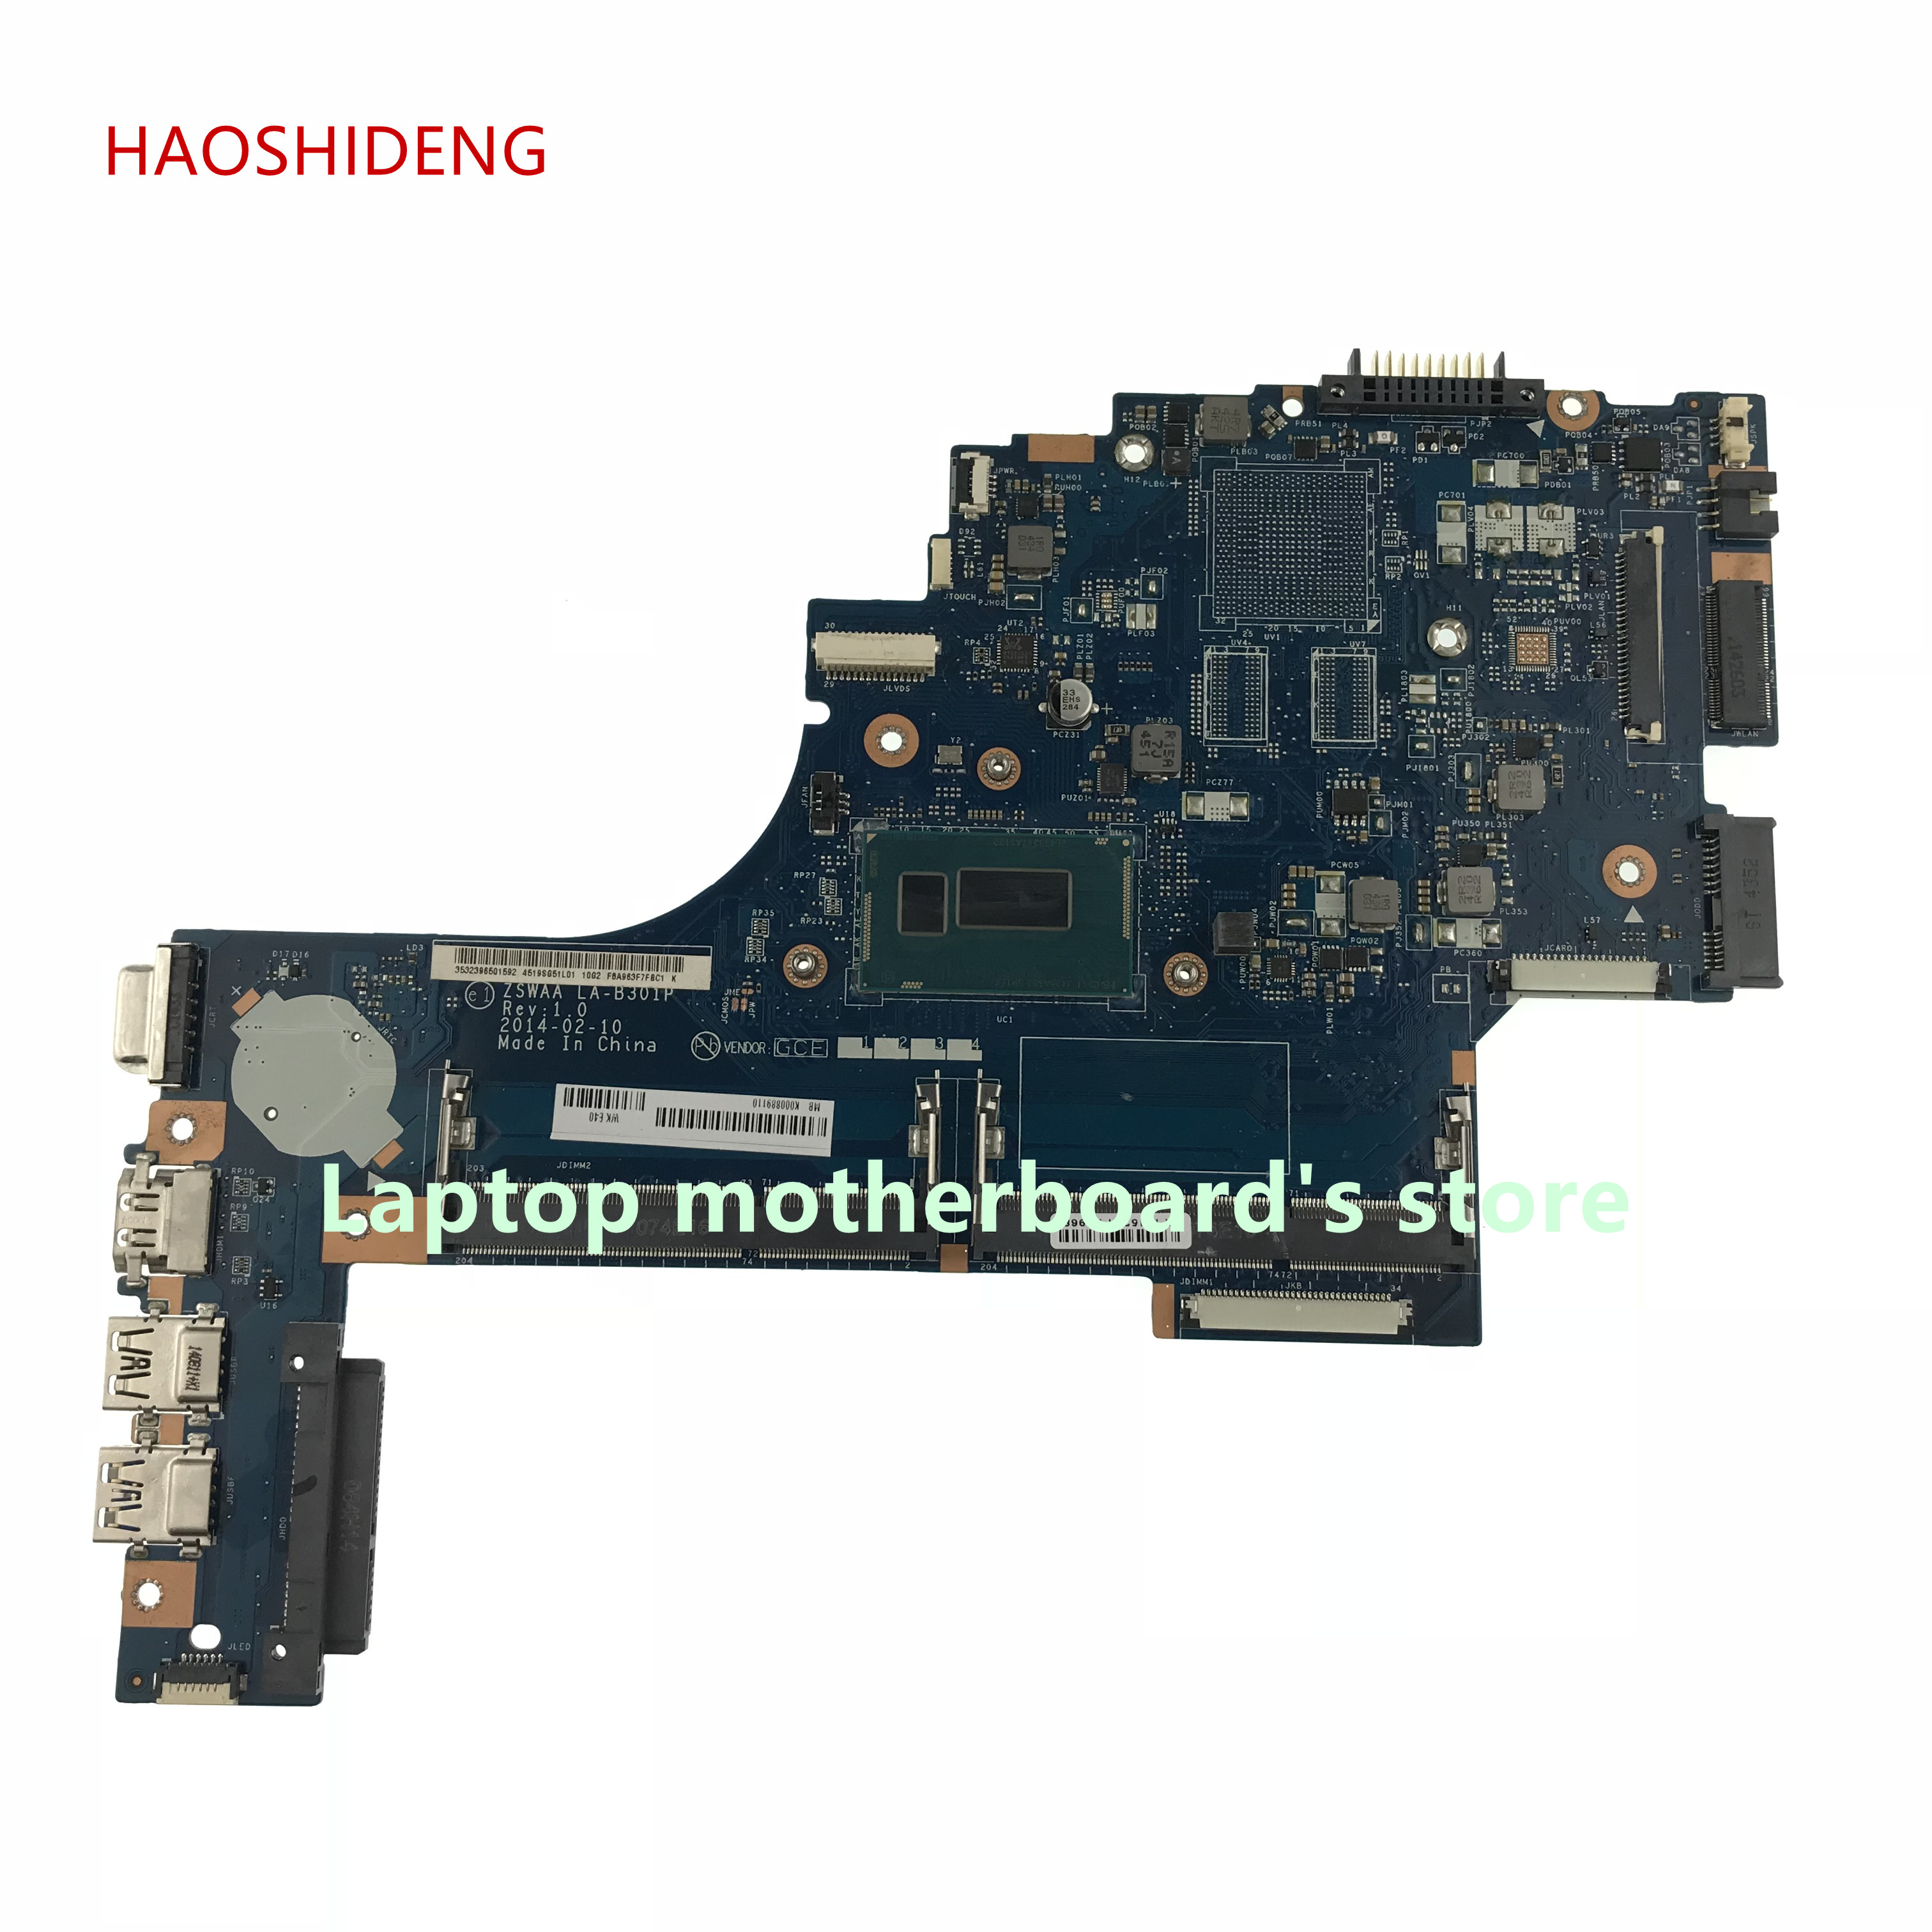 HAOSHIDENG K000889110 LA-B301P For Toshiba Satellite C50 C55 C55T C55-B5200 C55t-B5349 Motherboard with i3-4005 fully Tested